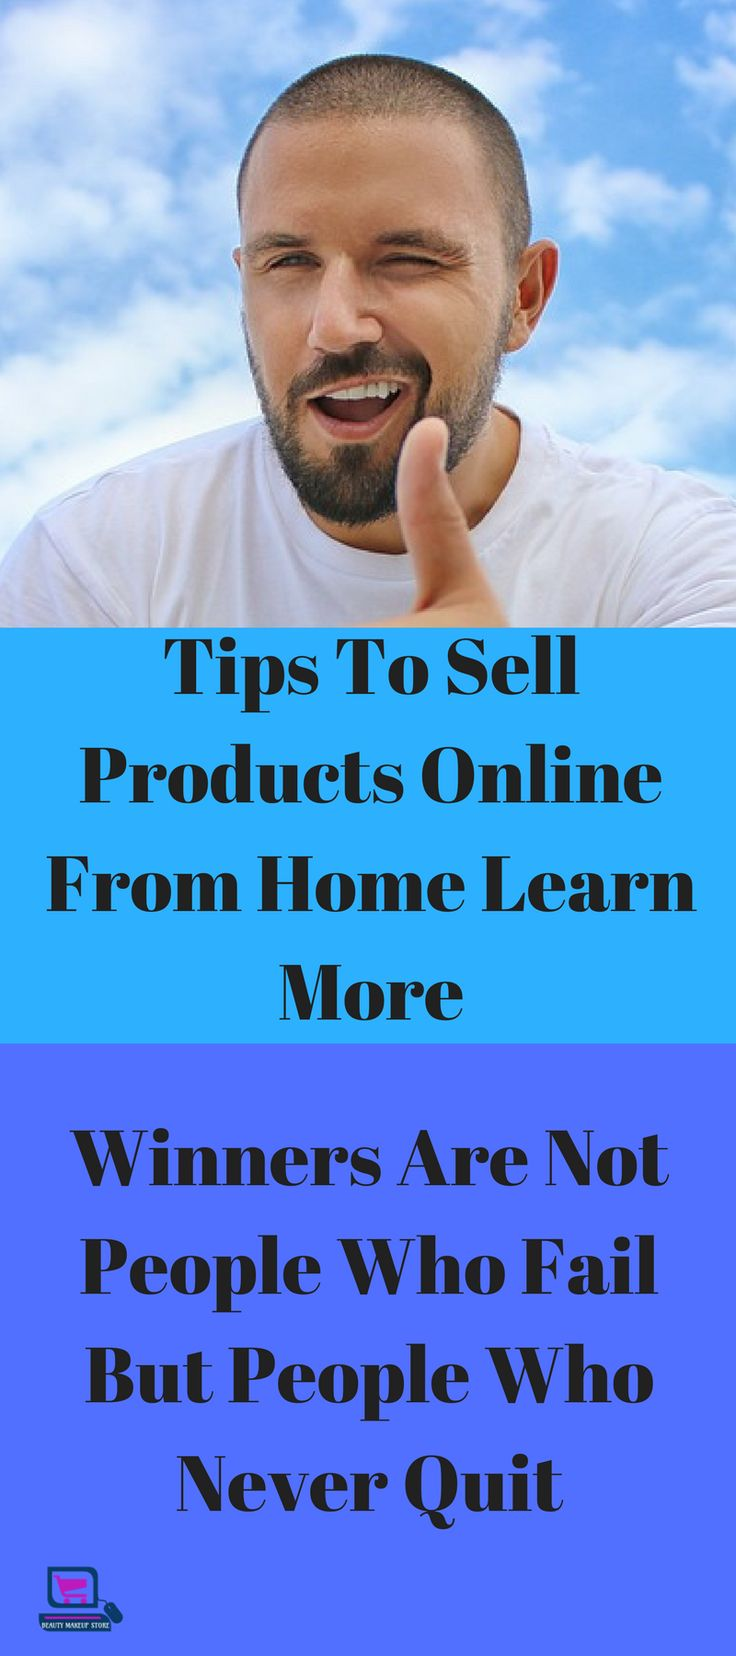 Tips To Sell Products Online From Home How To Sell More Products Online Last but not least, make sure that your online store looks good and performs well. #sellproductsonline #sellproductsonlinesmallbusinesses #selling #sellonline #tipsforbloggers